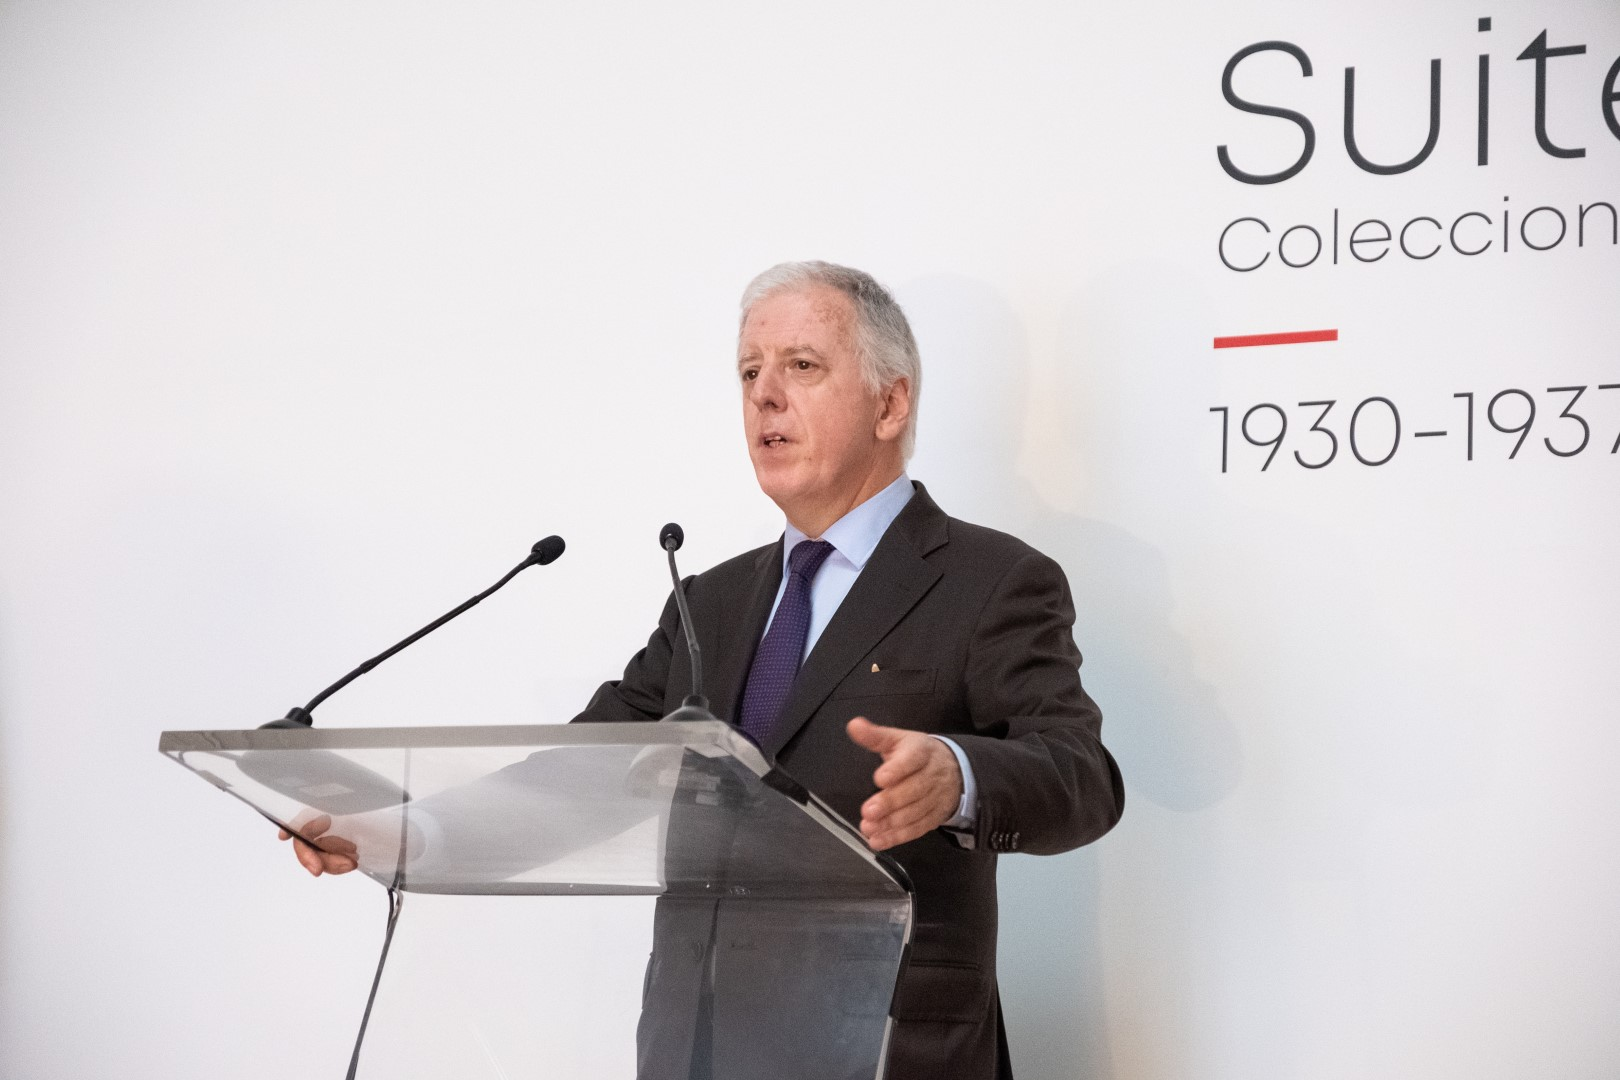 http://www.mmipo.pt/assets/misc/Not%C3%ADcias/2019/2019-05-30%20Inaugura%C3%A7%C3%A3o%20Picasso/DSCF2276.jpg